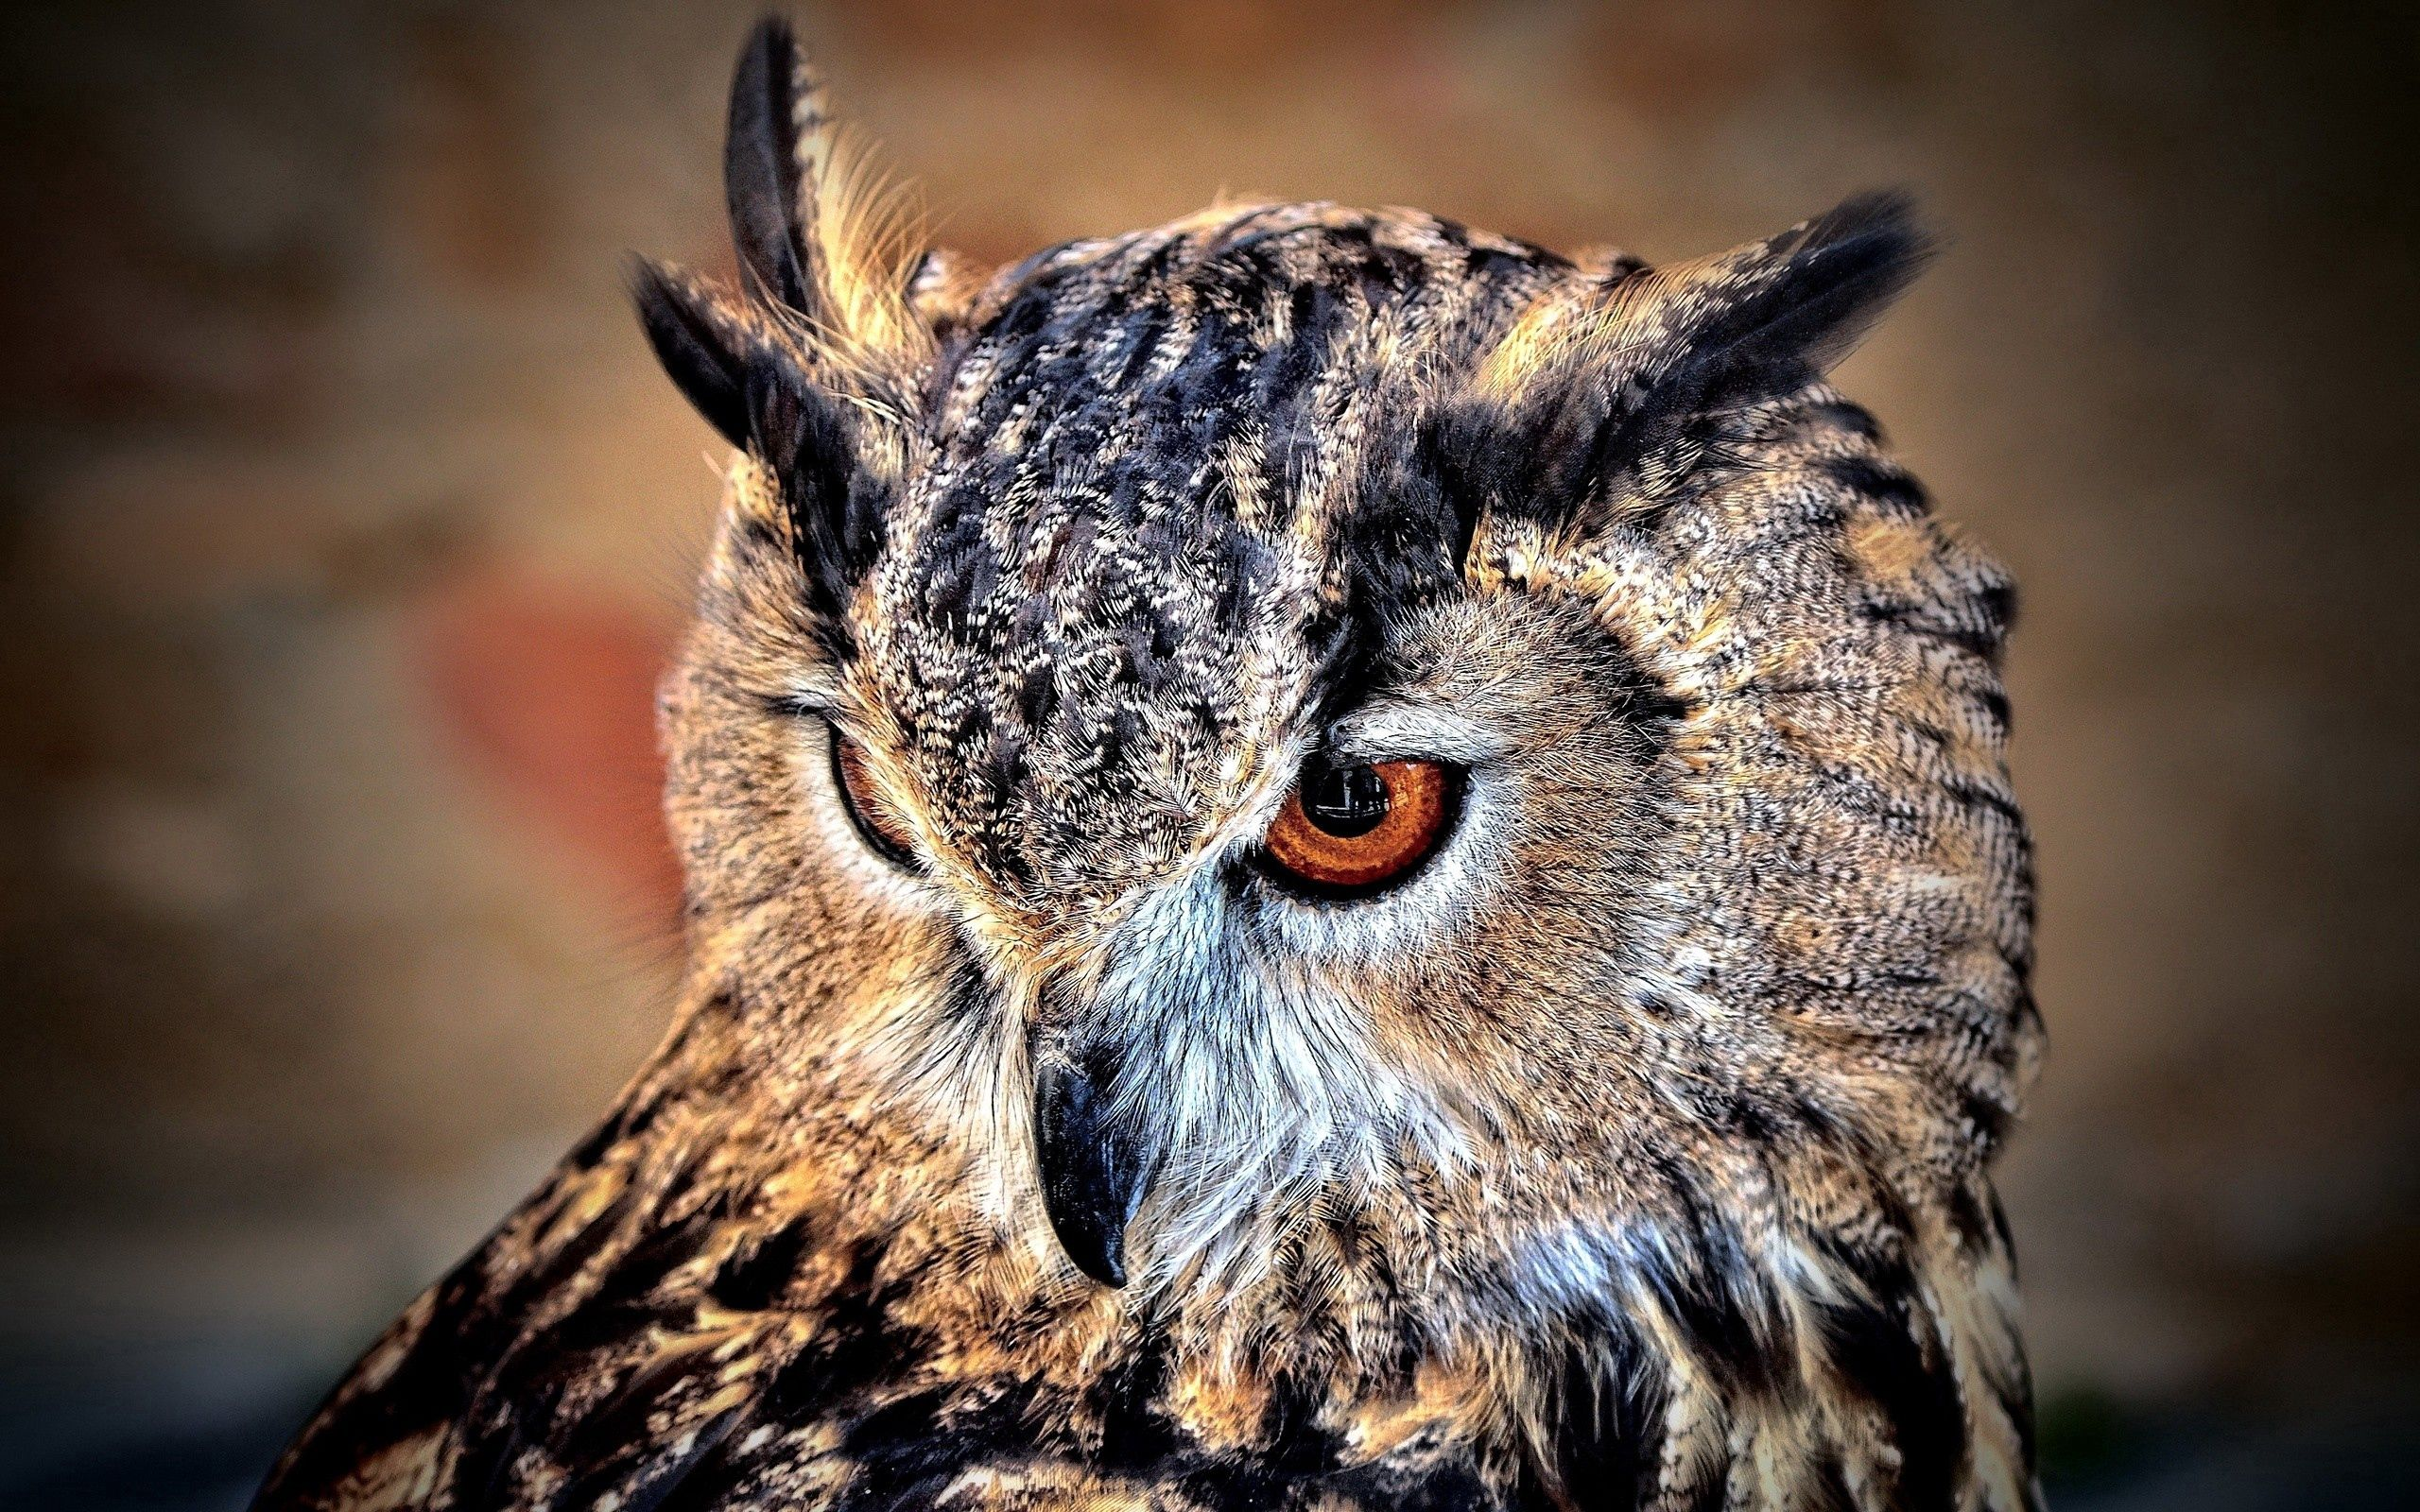 105213 Screensavers and Wallpapers Bird for phone. Download Animals, Owl, Bird, Predator, Sight, Opinion pictures for free